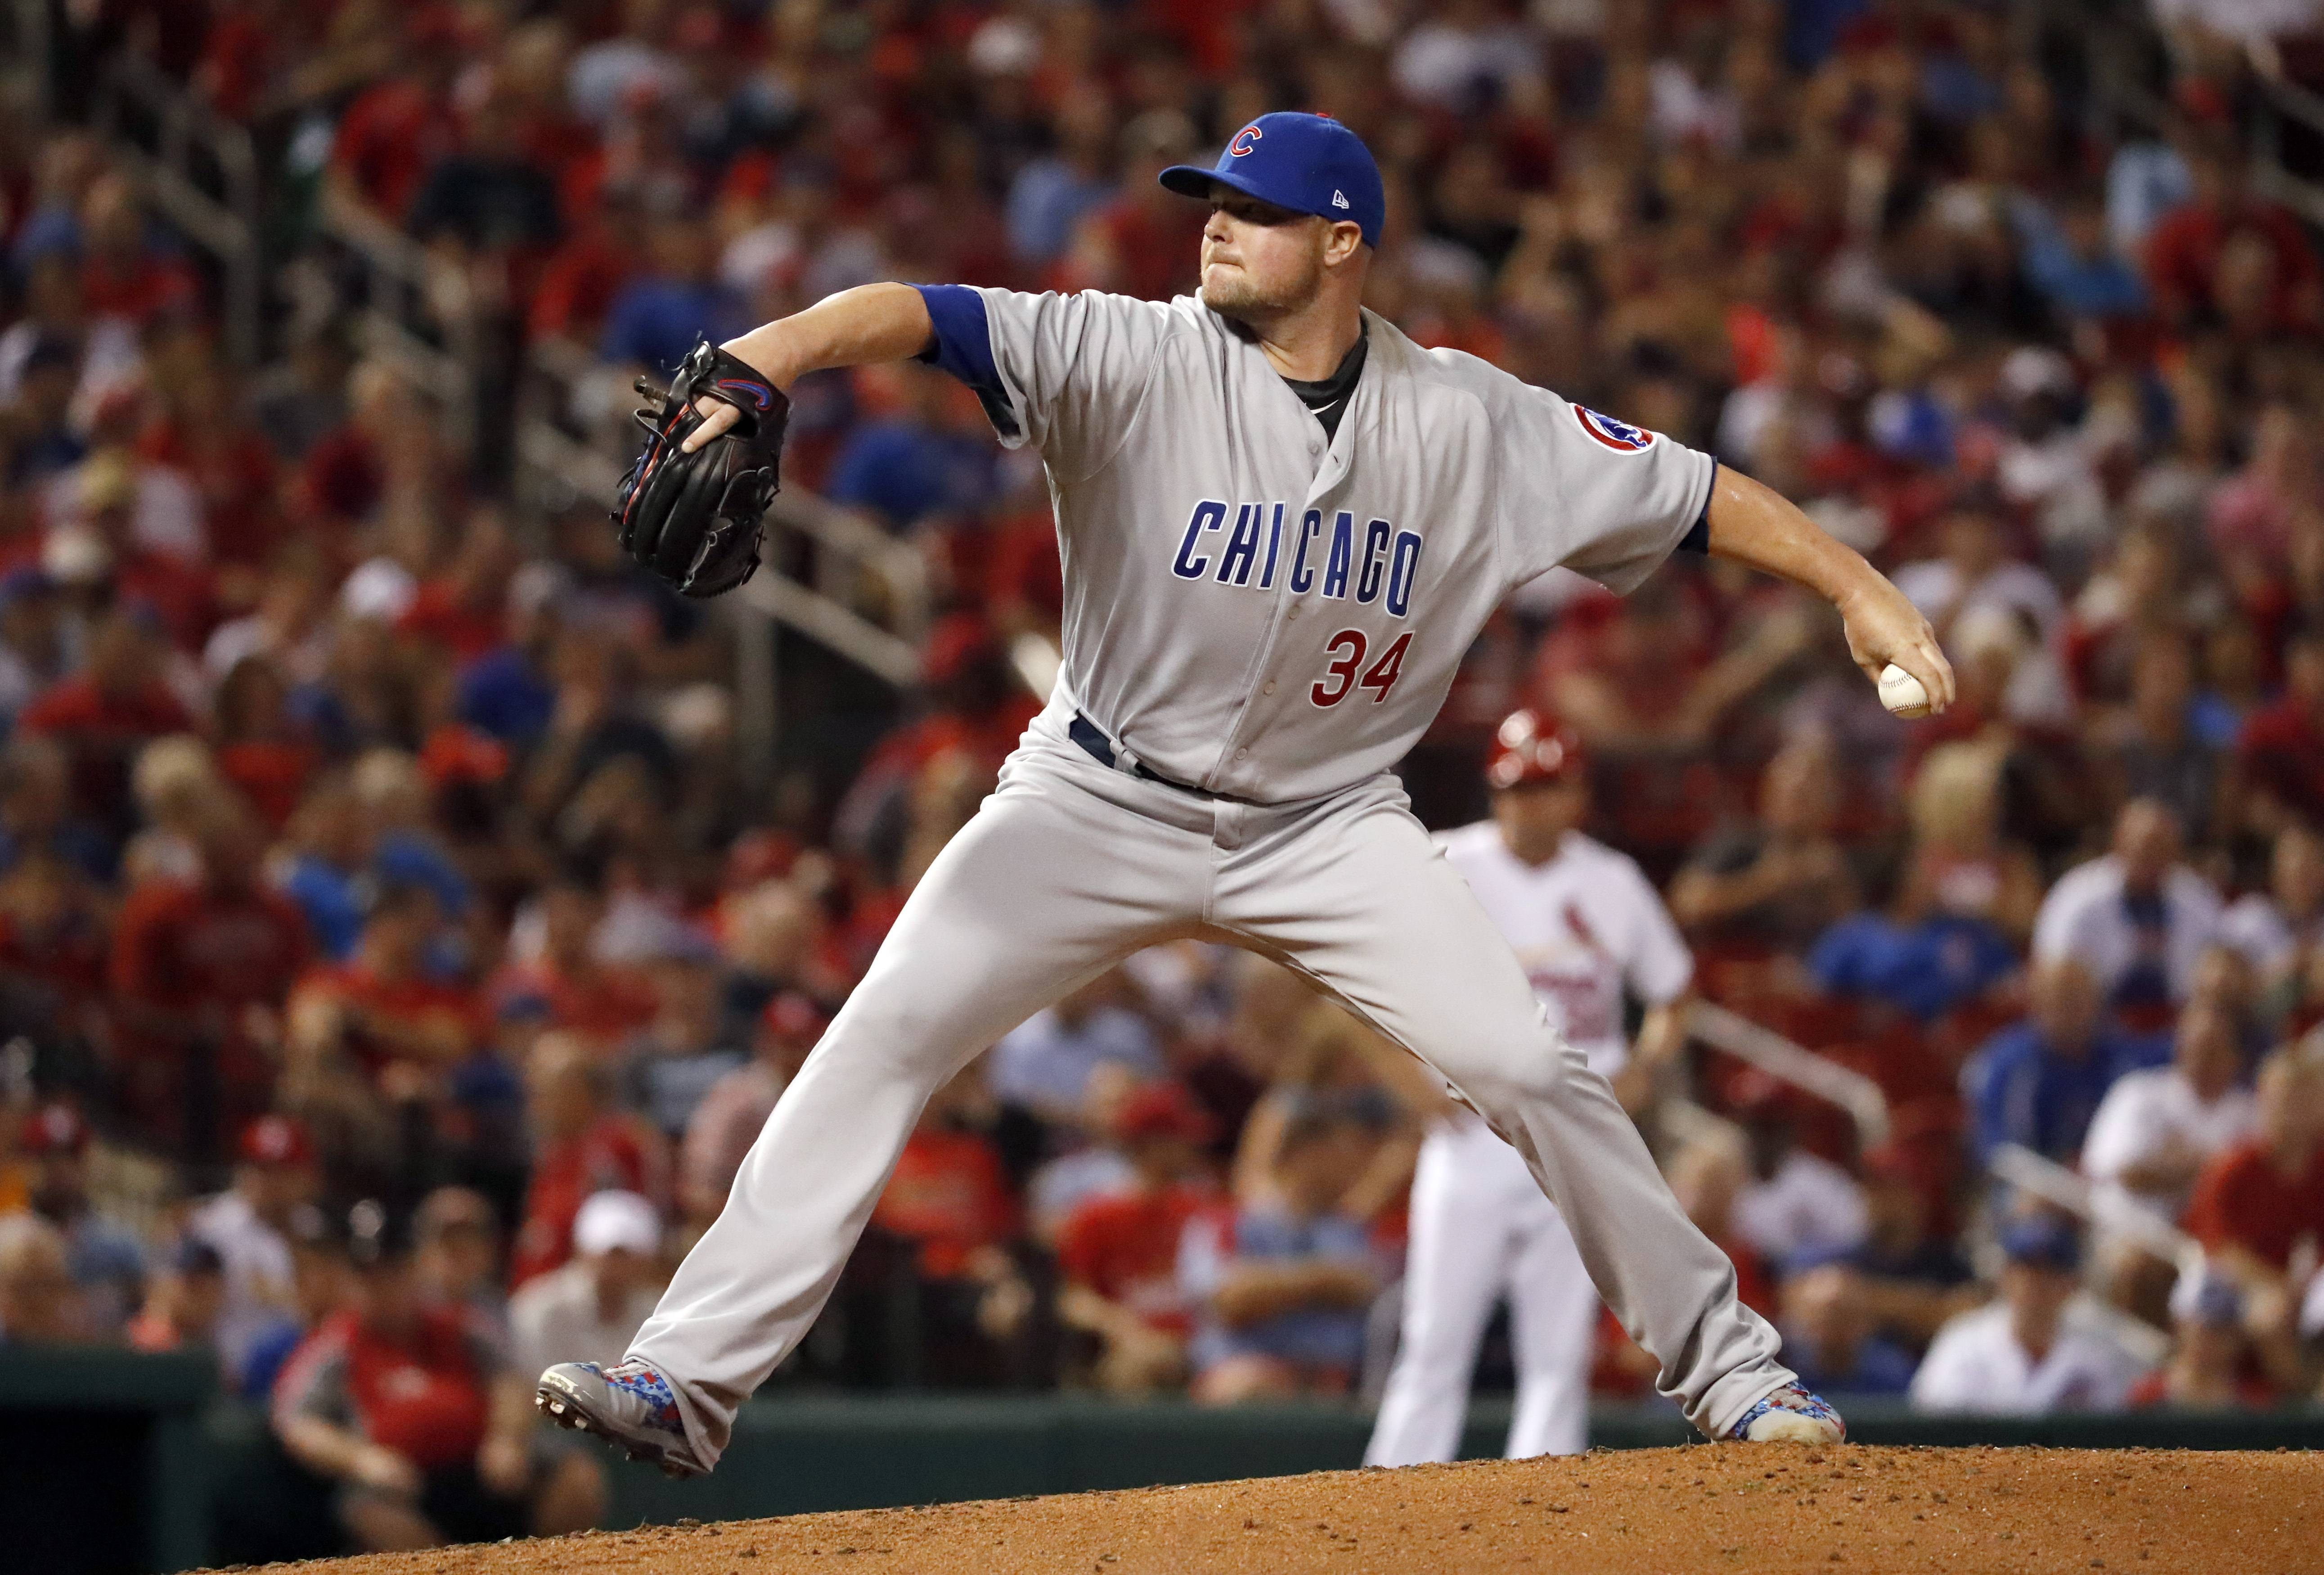 Chicago Cubs starting pitcher Jon Lester throws during the first inning of a baseball game against the St. Louis Cardinals on Monday, Sept. 25, 2017, in St. Louis. (AP Photo/Jeff Roberson)